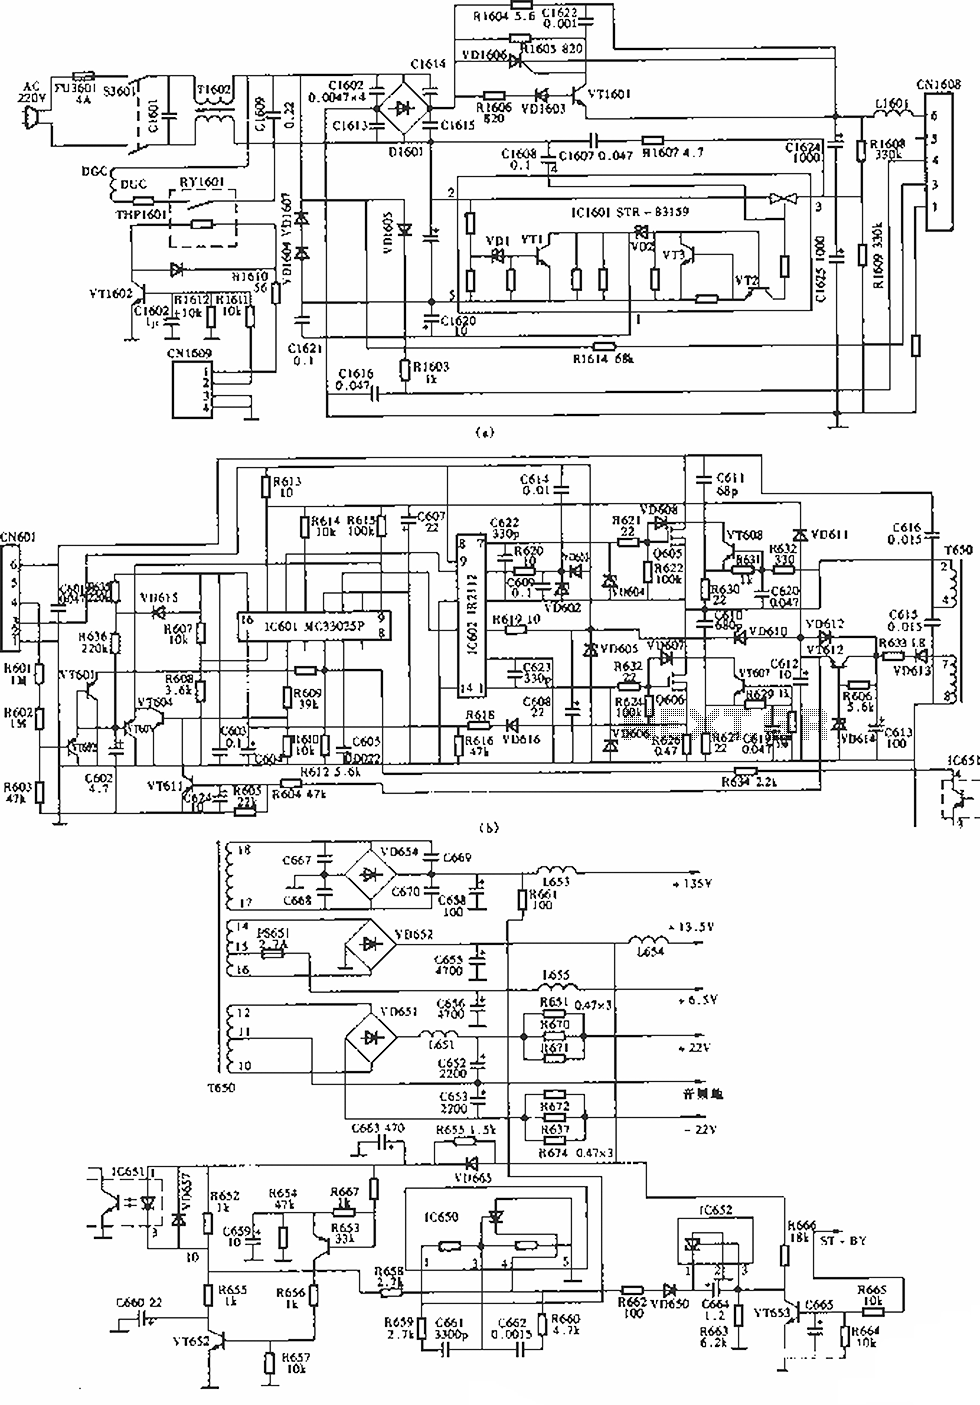 New Circuits Page 4 Battery Charger Circuit 21 Power Supply Nextgr Sony Kv S29mhl Tv Switching Sir A 80145a Diagram